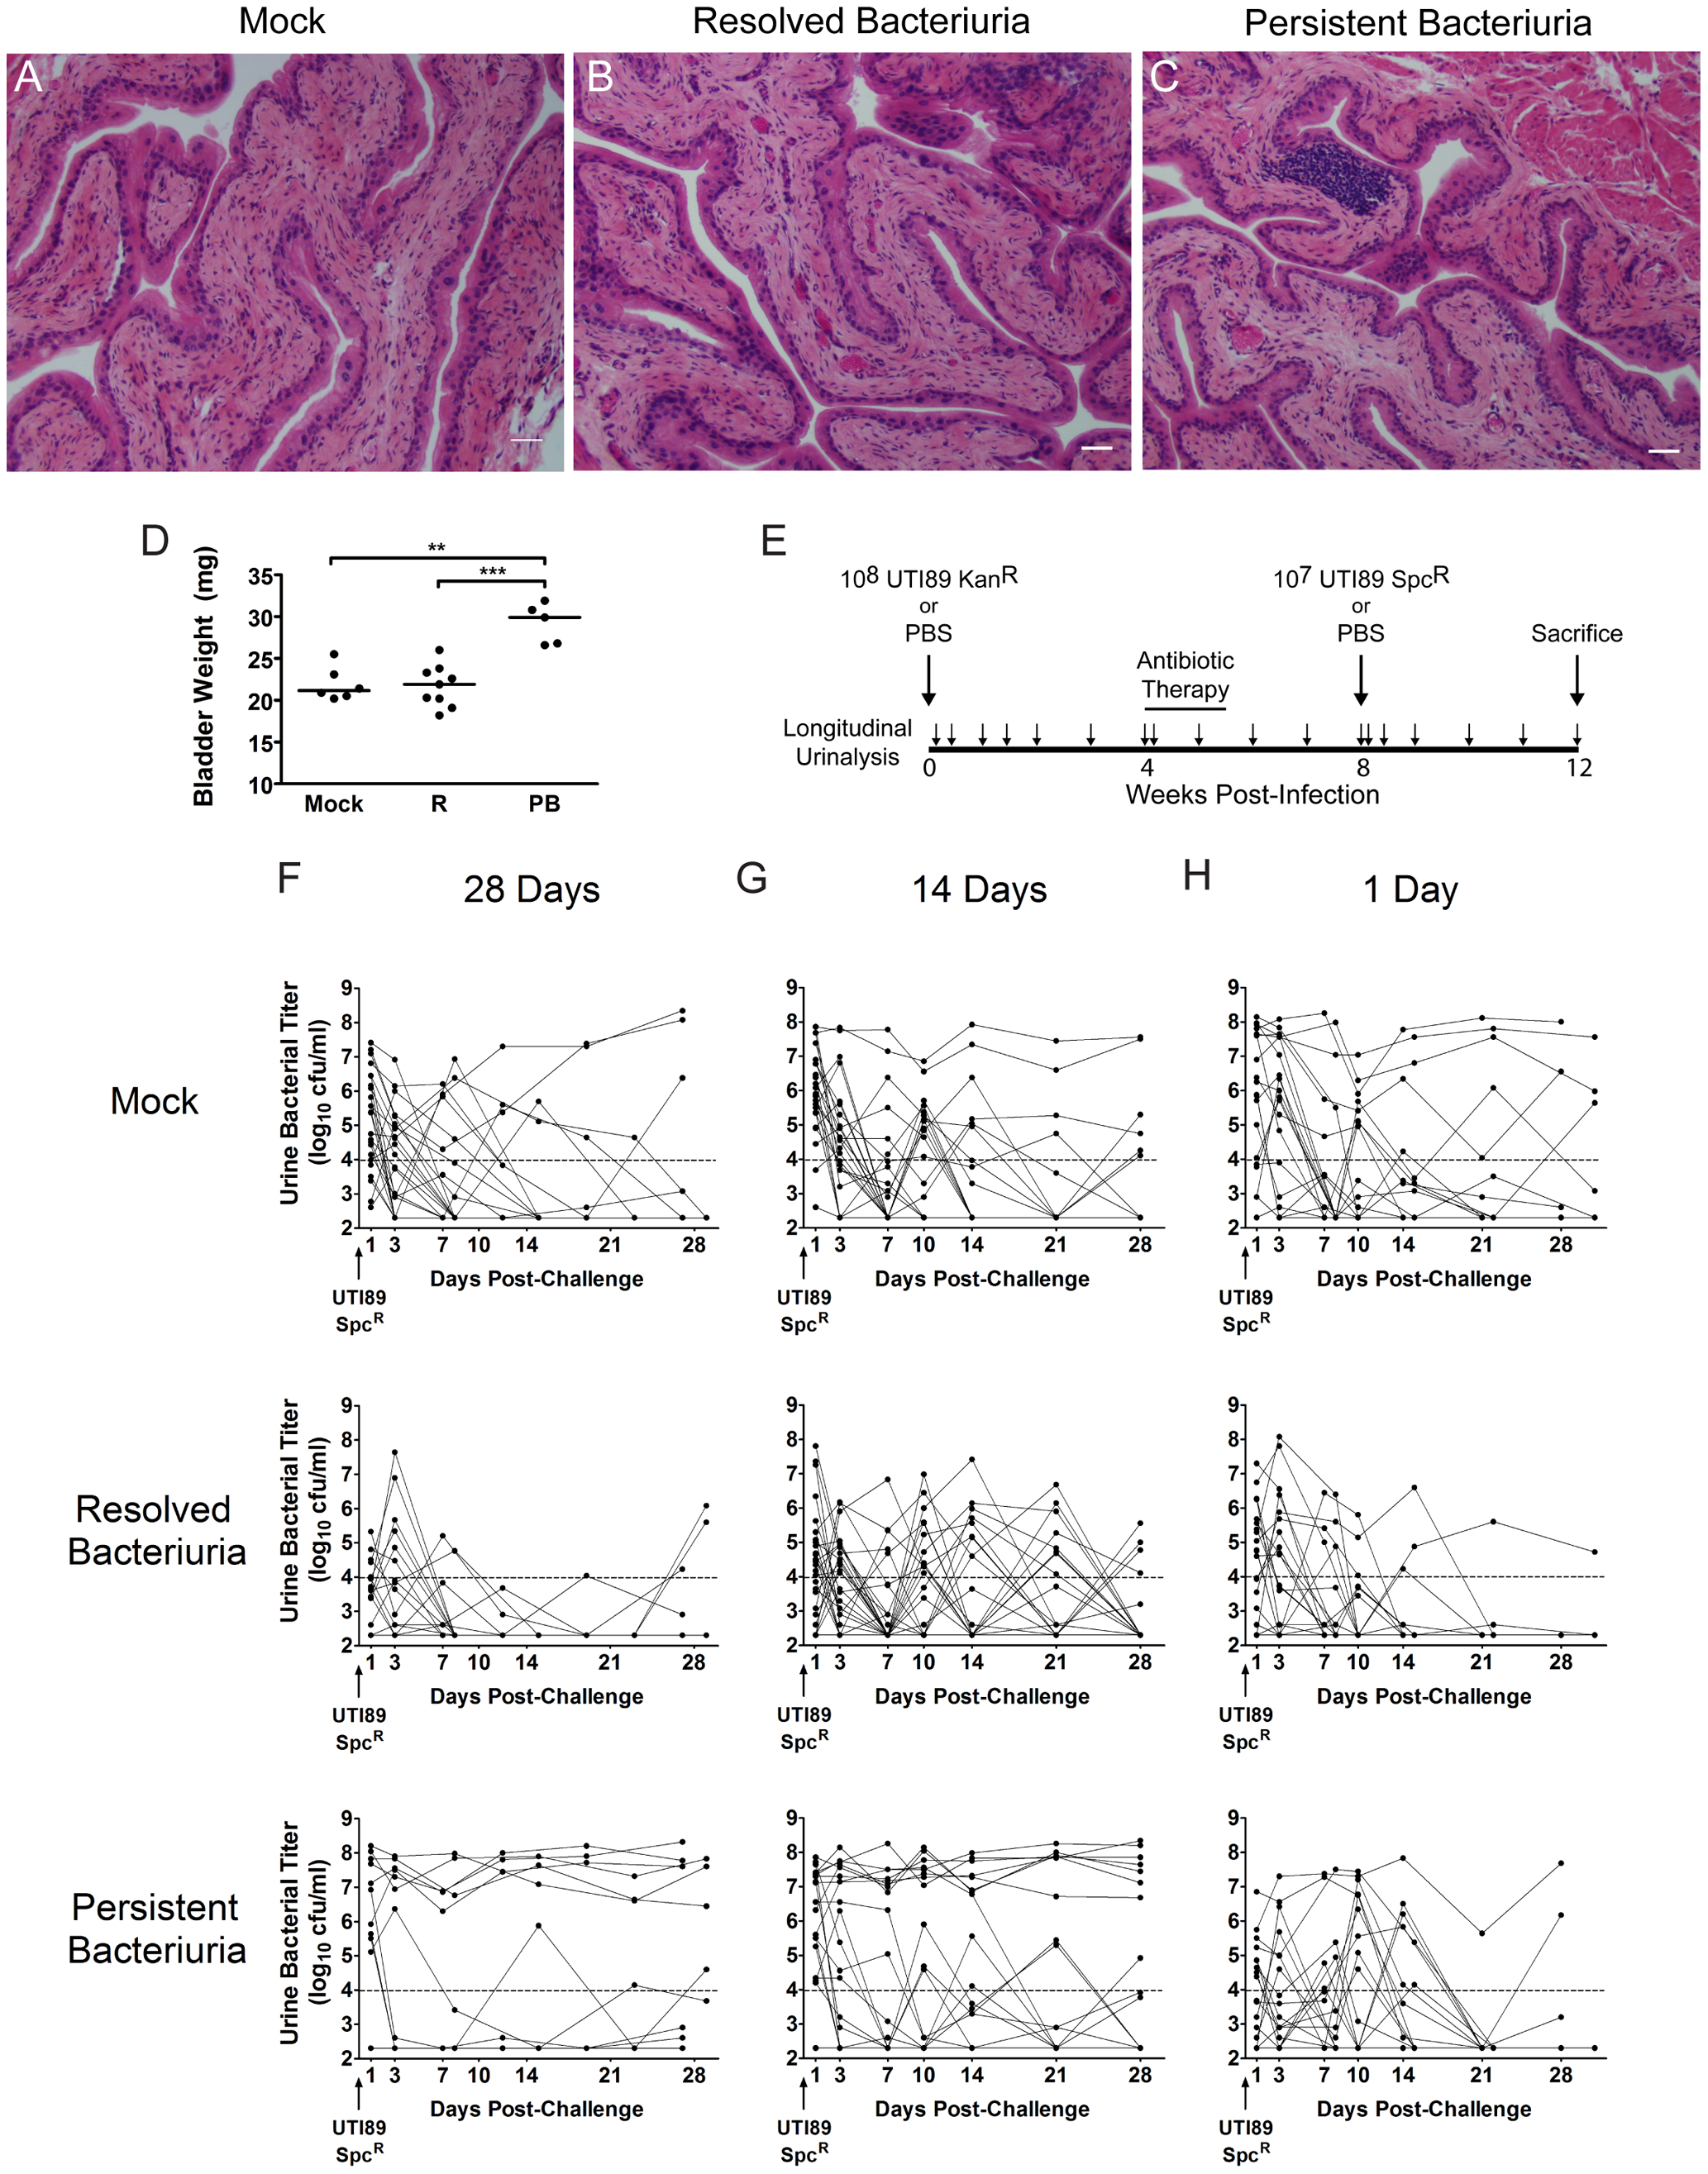 C3H/HeN mice with a history of chronic cystitis are more susceptible to chronic cystitis upon challenge infection.